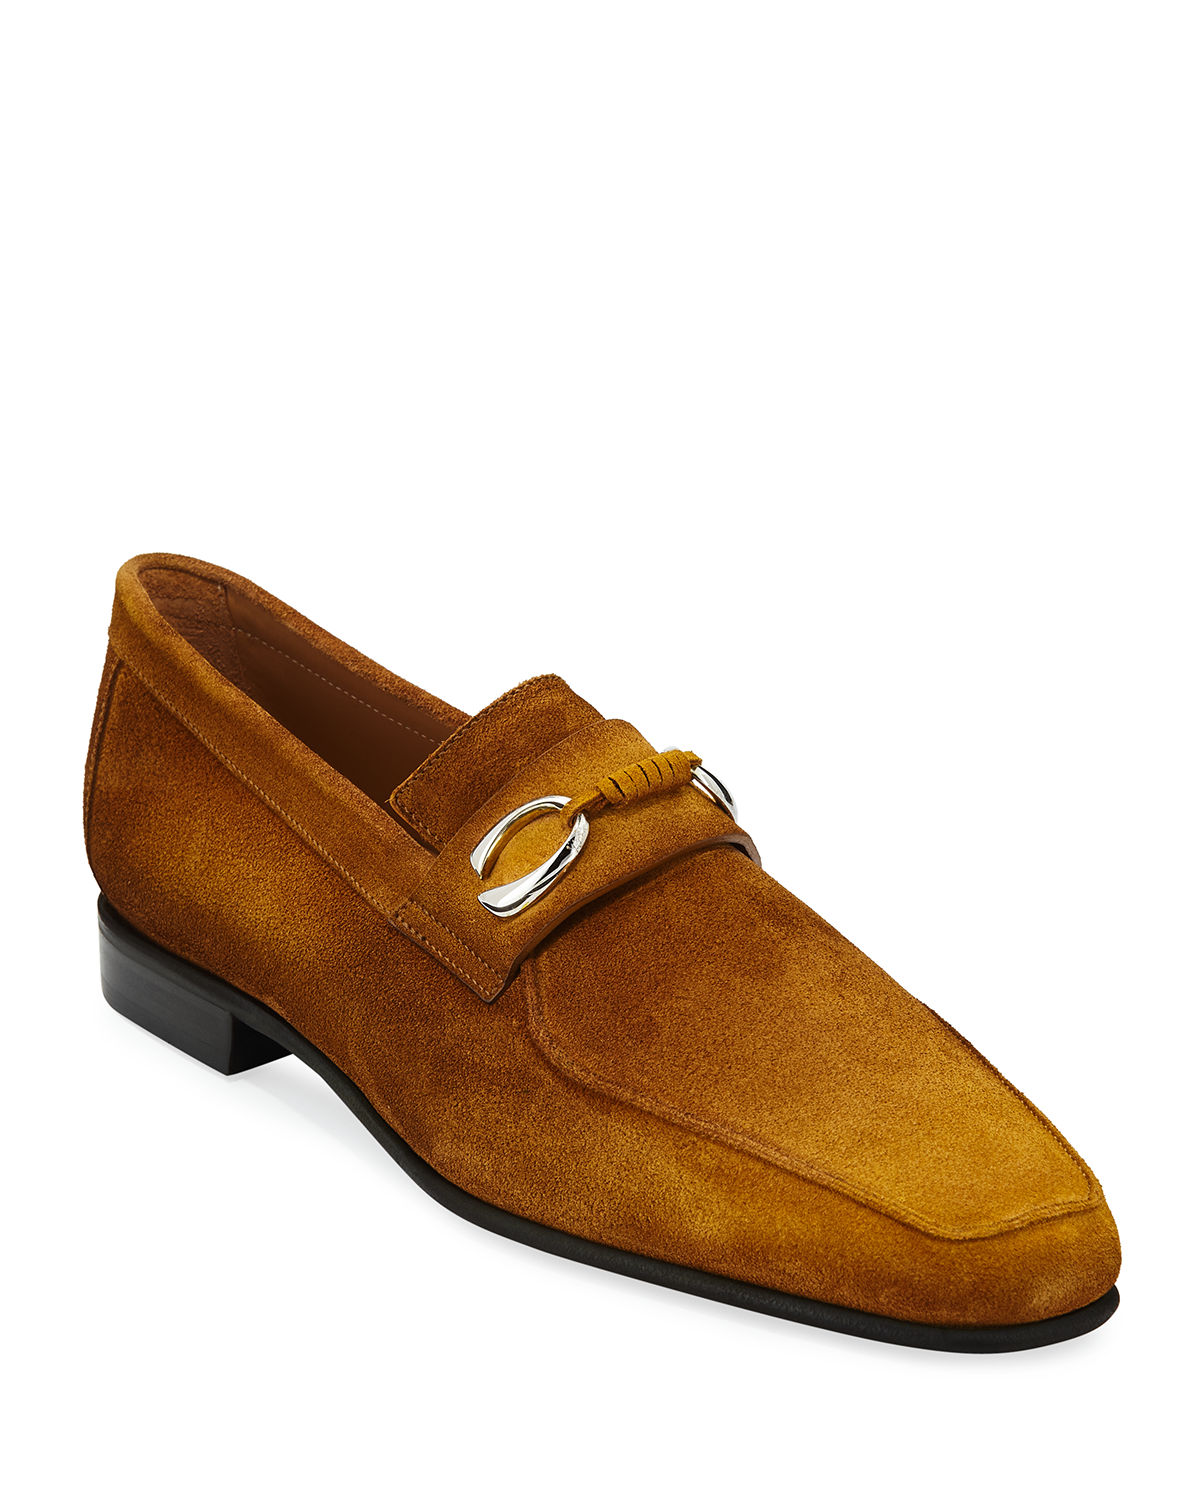 Women's Shoes Clothing, Shoes & Accessories 2019 Fashion Bally Beige Leather Metal Detail Loafers Shoes Sz 5m Made In Italy Soft And Light